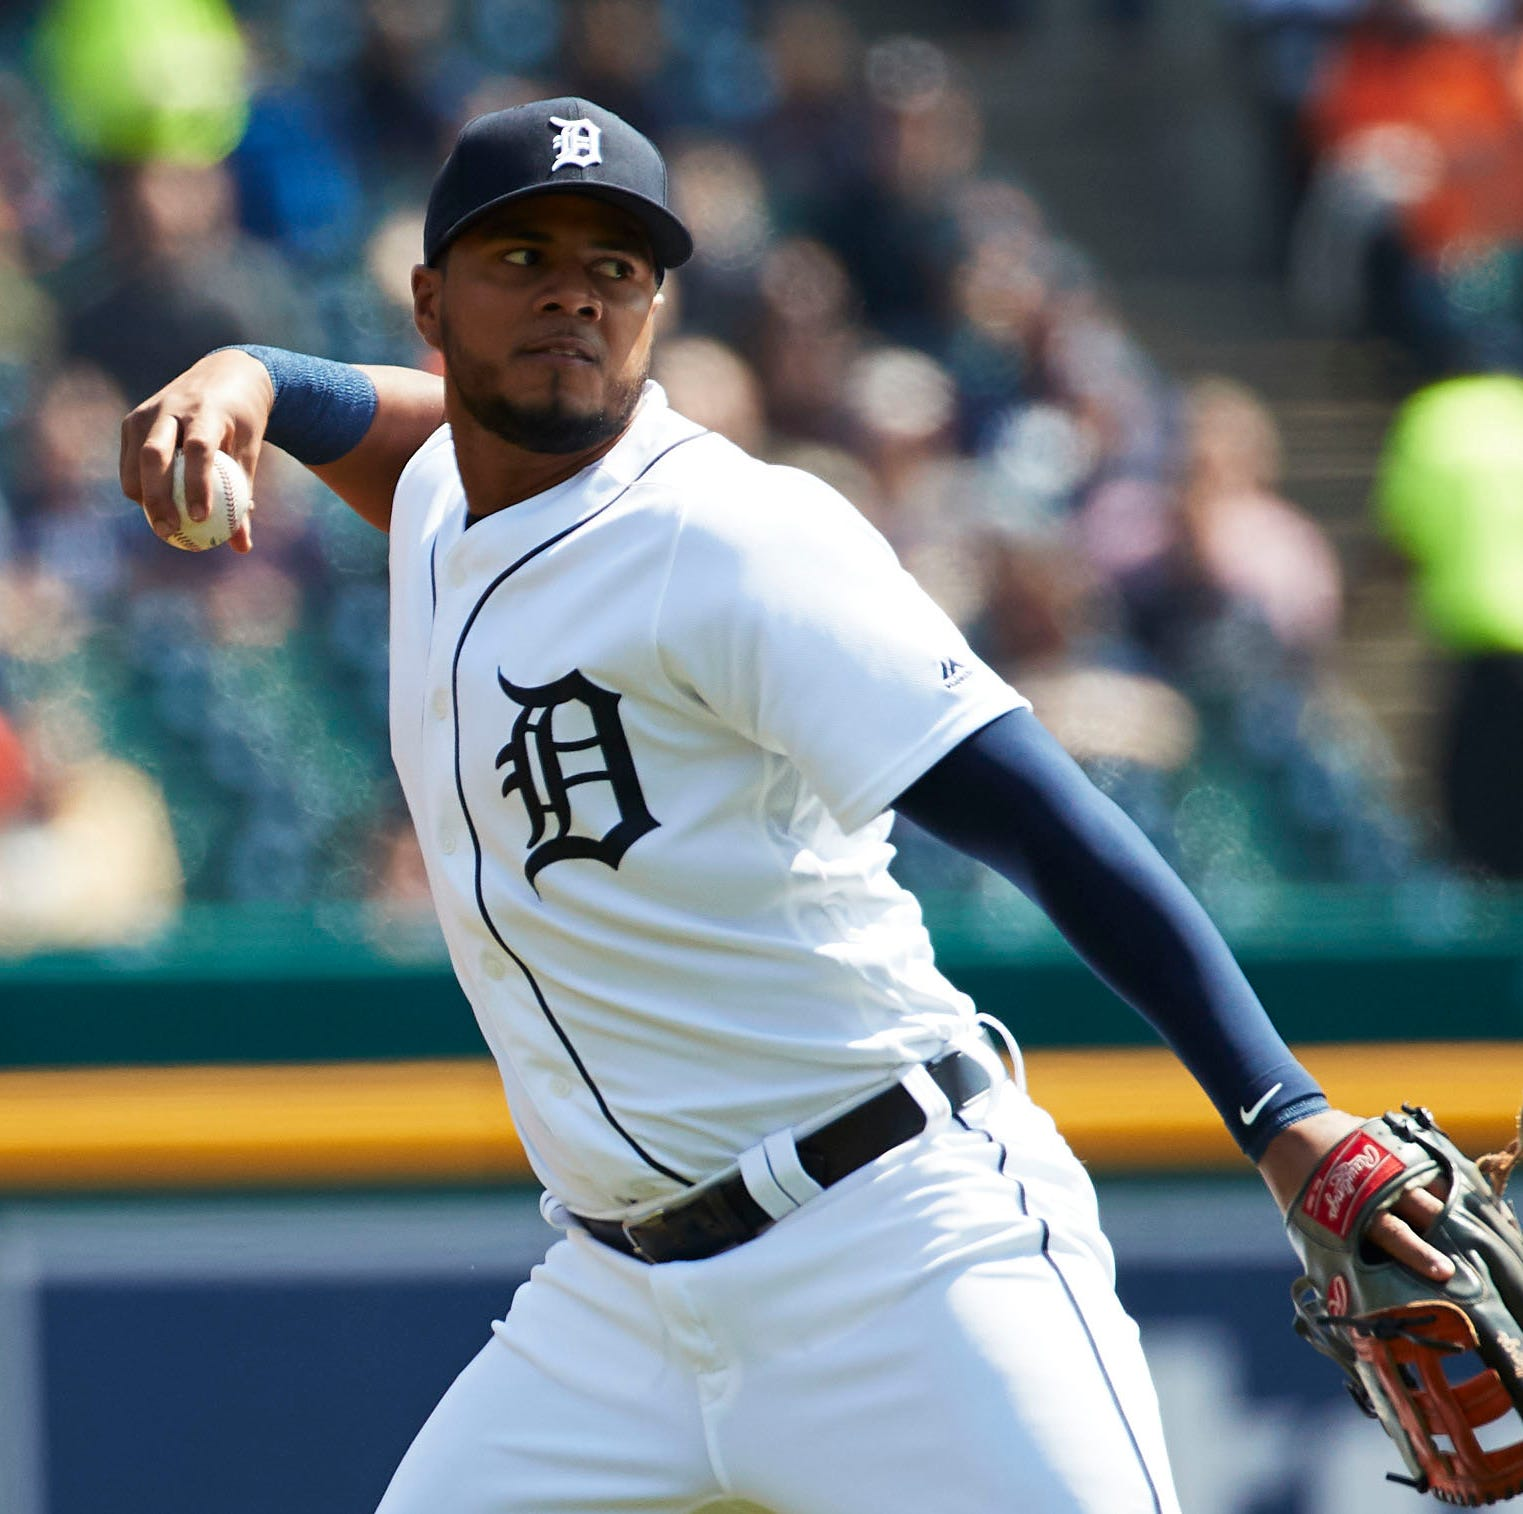 Detroit Tigers send Jeimer Candelario to Triple-A to 'find himself'